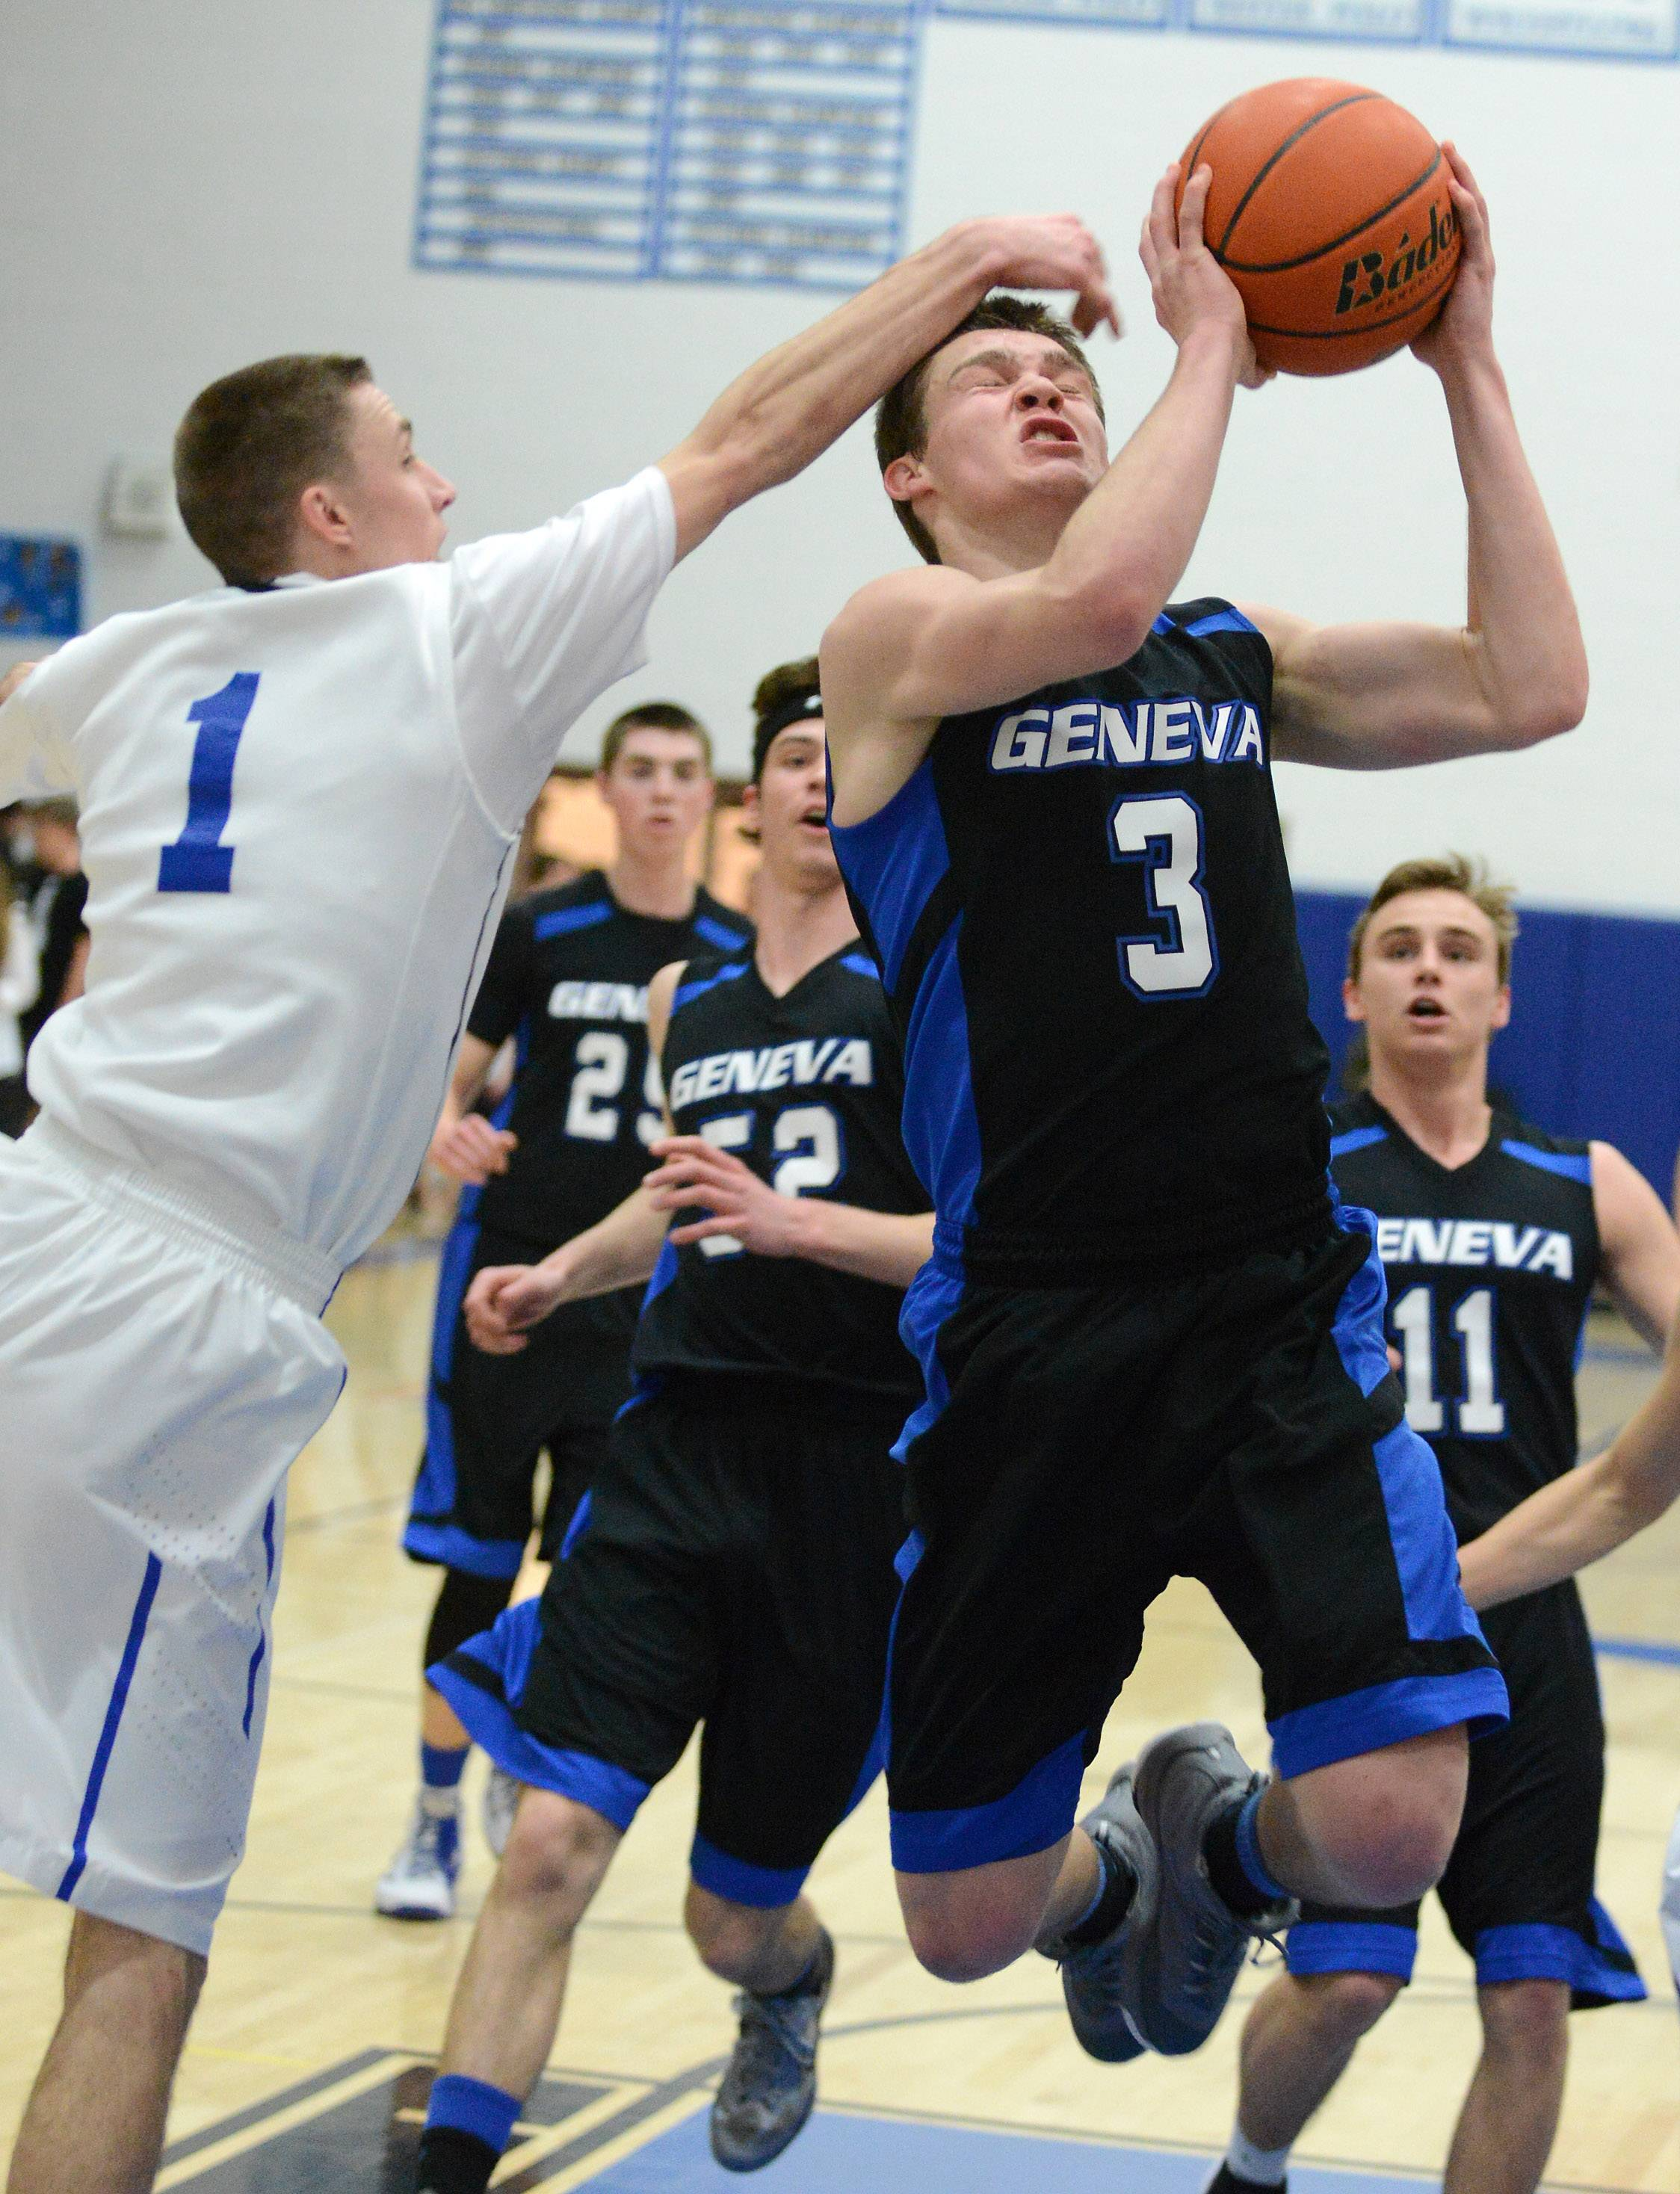 Geneva's Pace Temple scores and is fouled by St. Charles North's Alec Goetz .